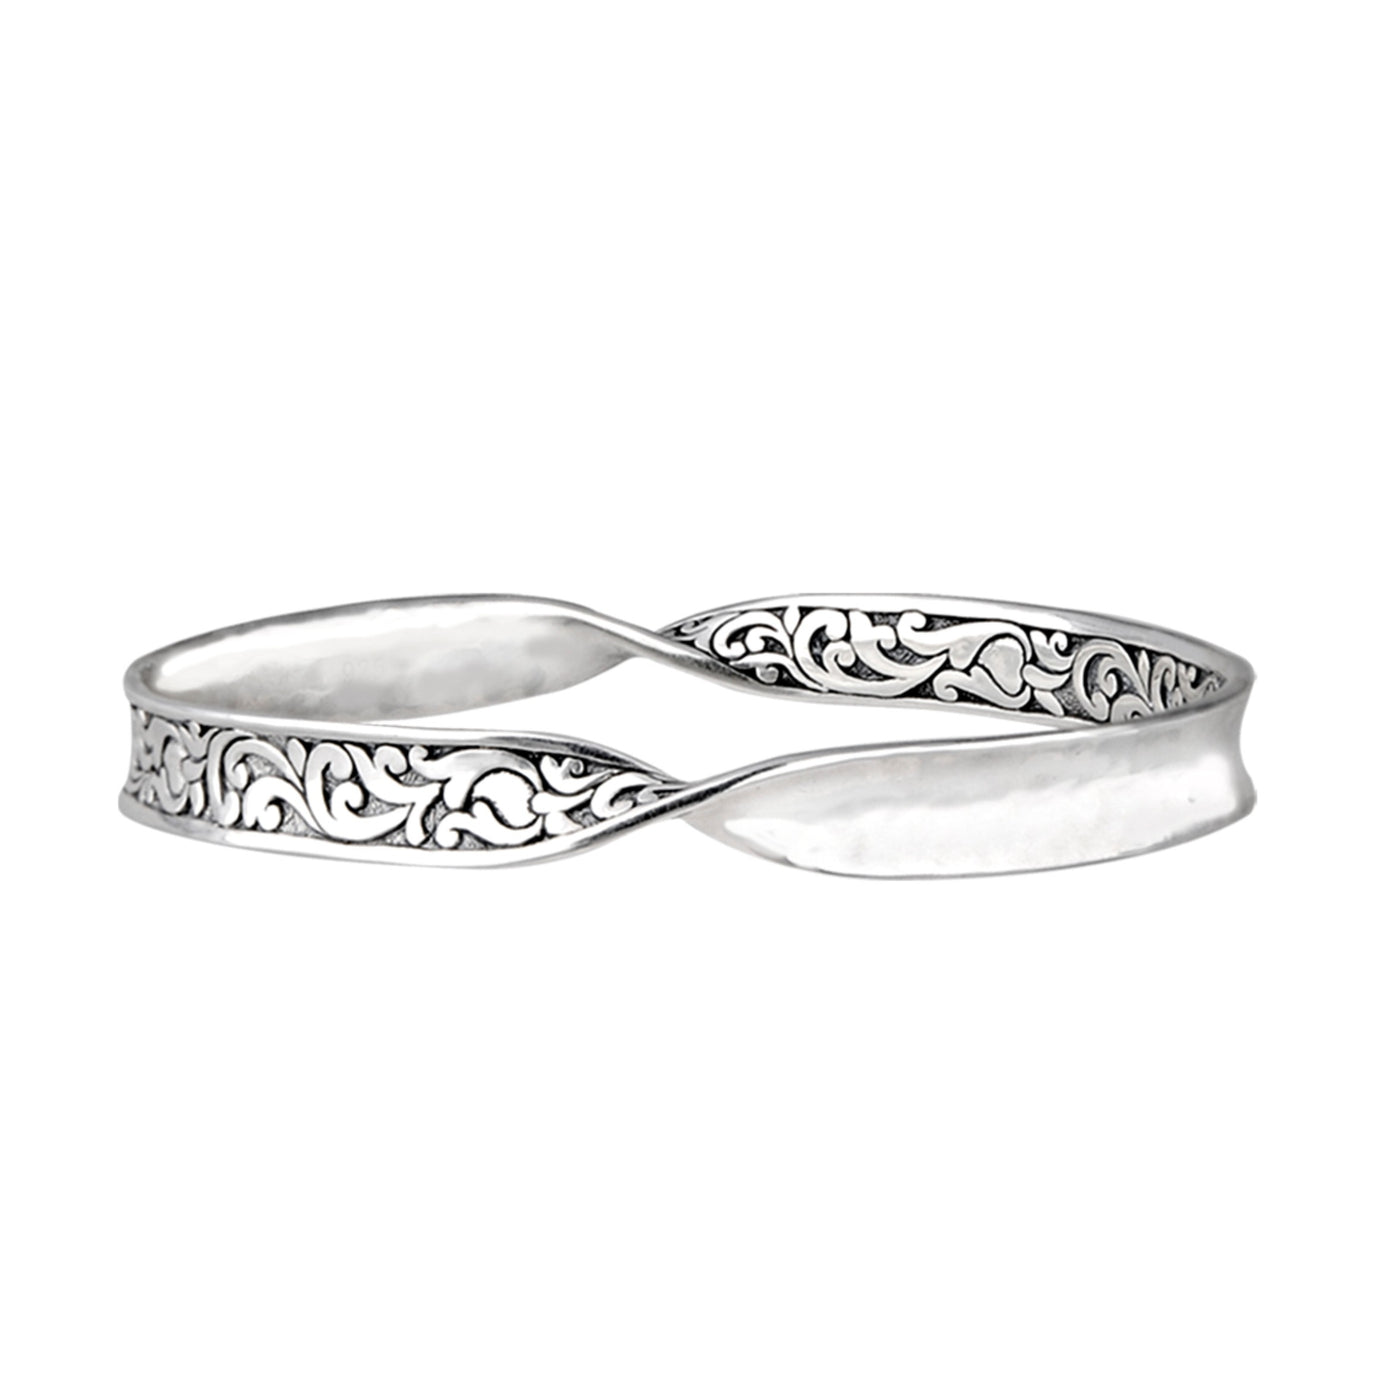 JD B64052 TWISTED FILIGREE BANGLE